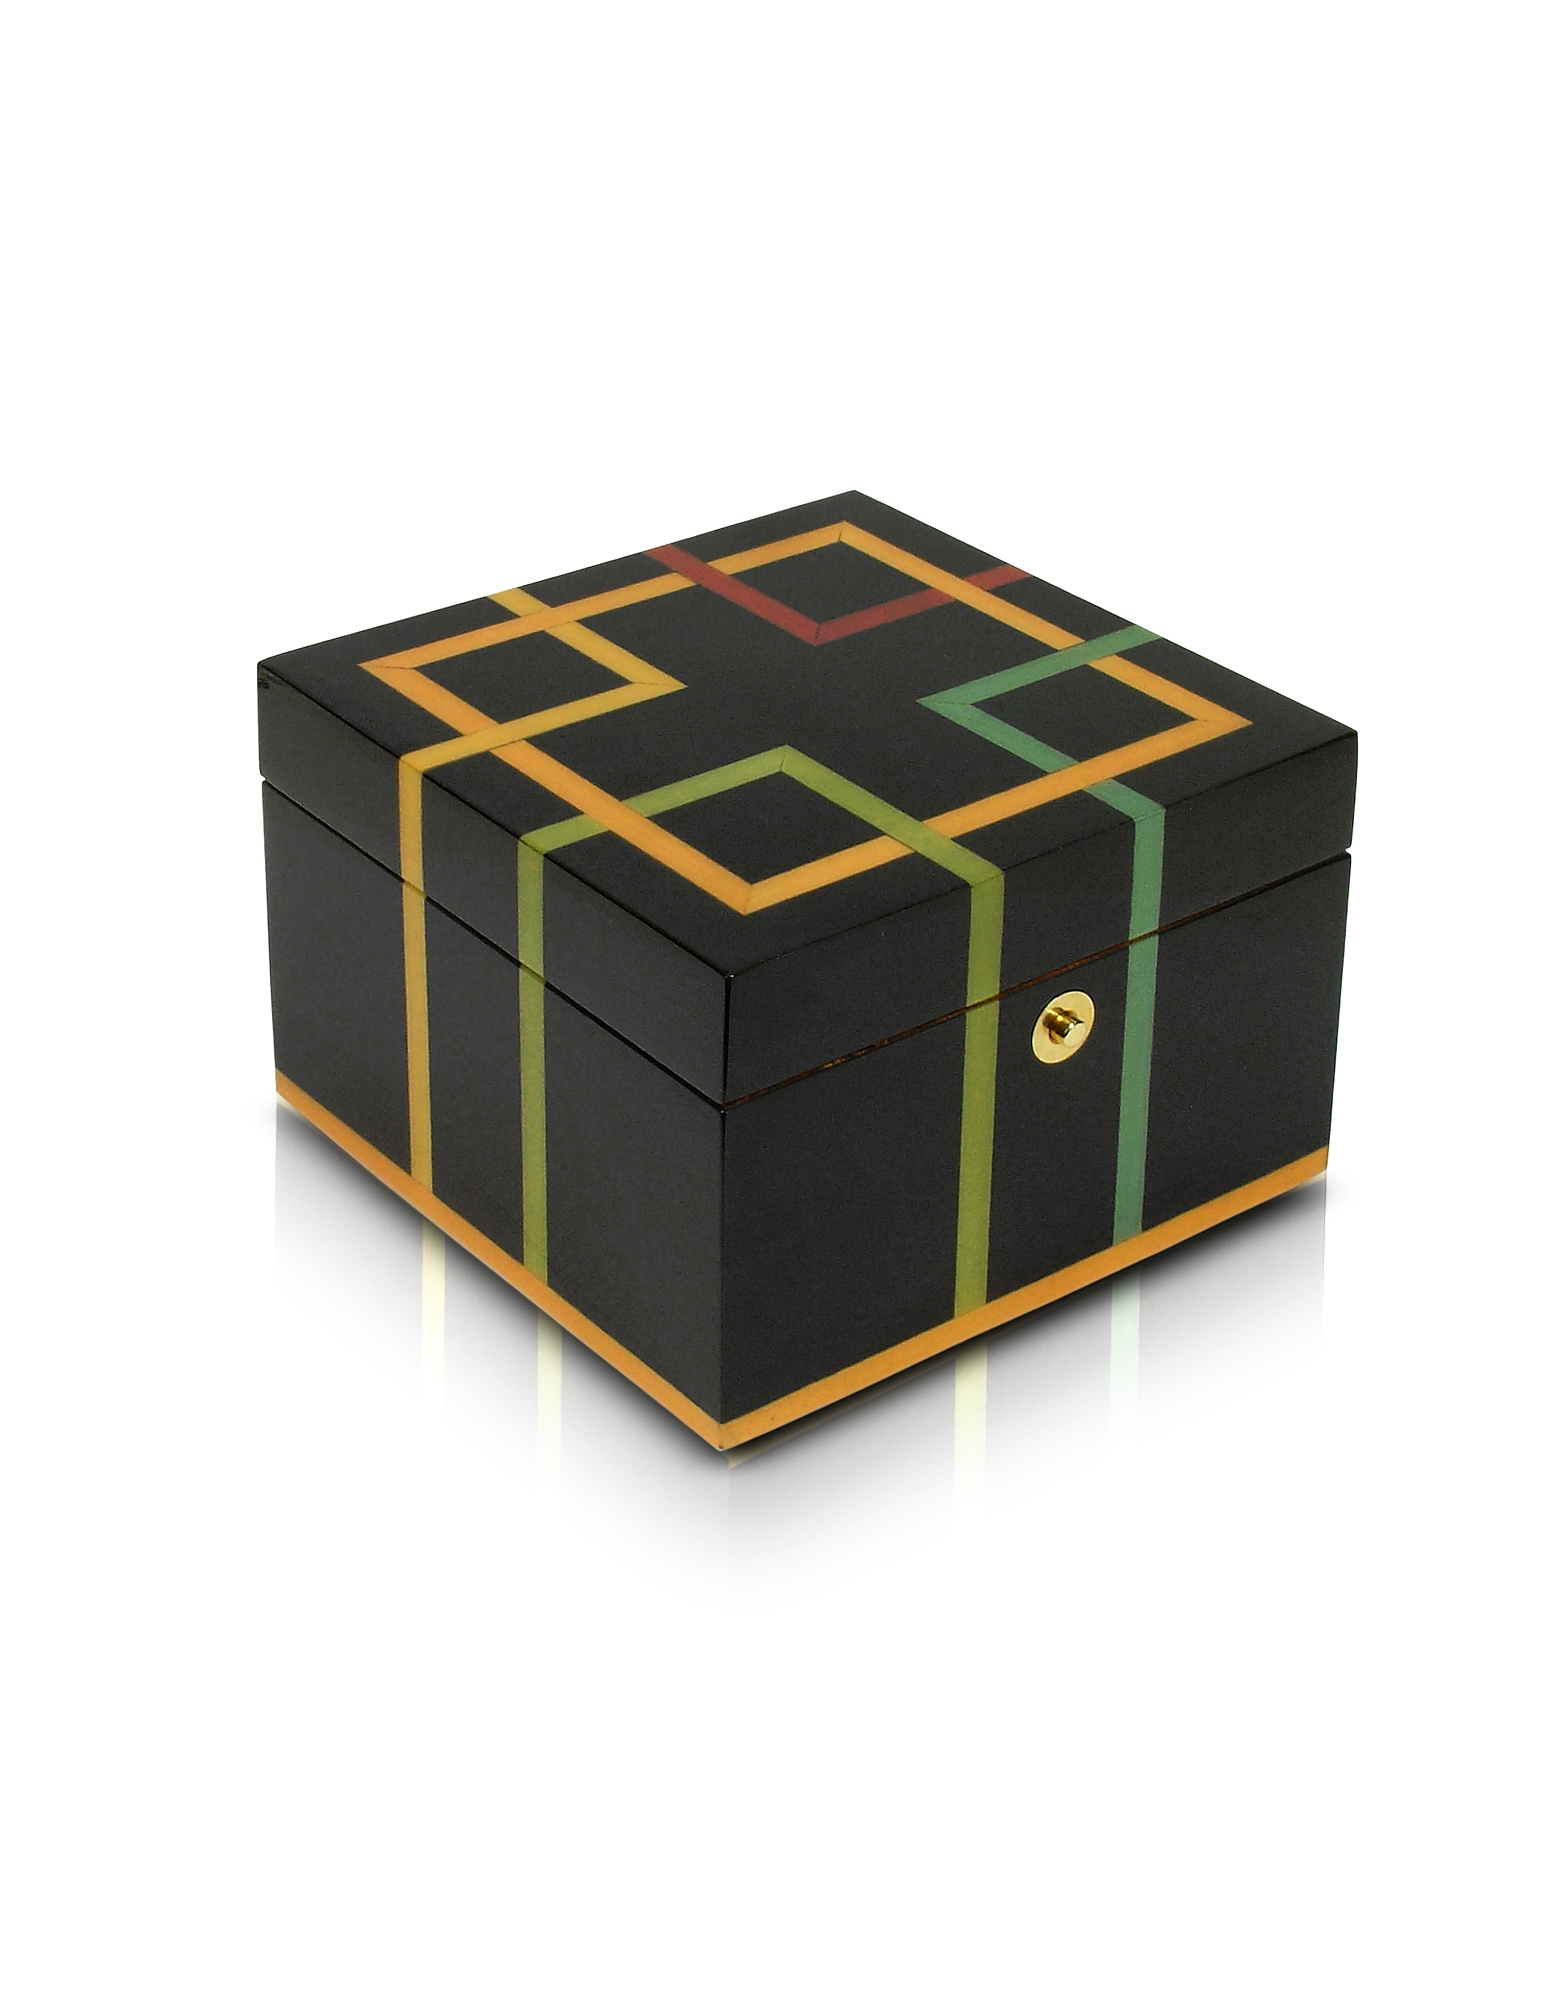 Black Geometric Inlaid Wood Jewelry Box